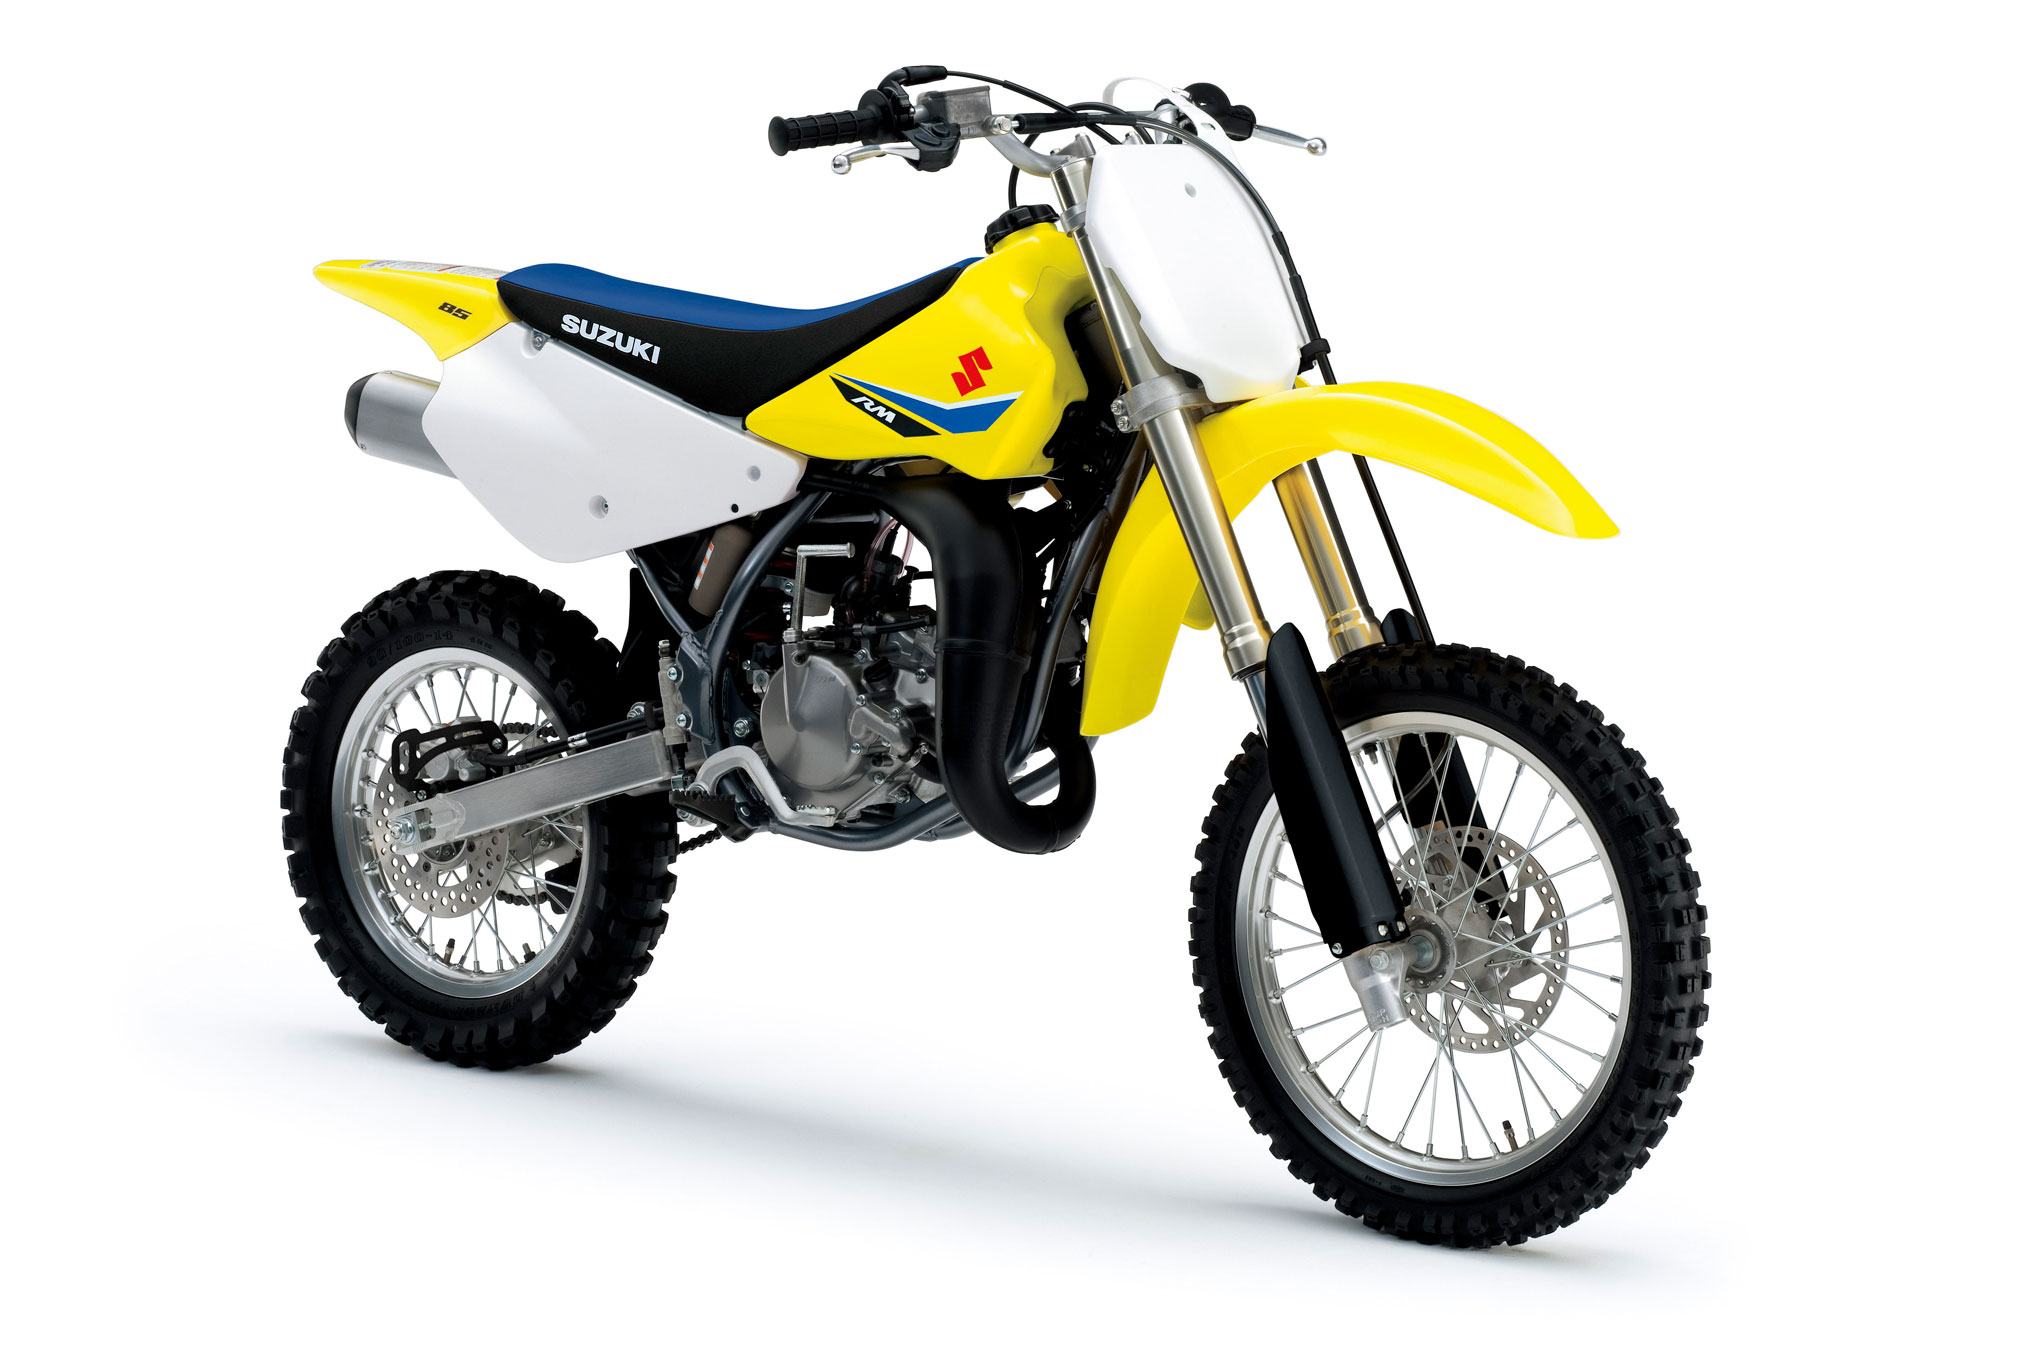 2018 Suzuki Rm85 Review Totalmotorcycle